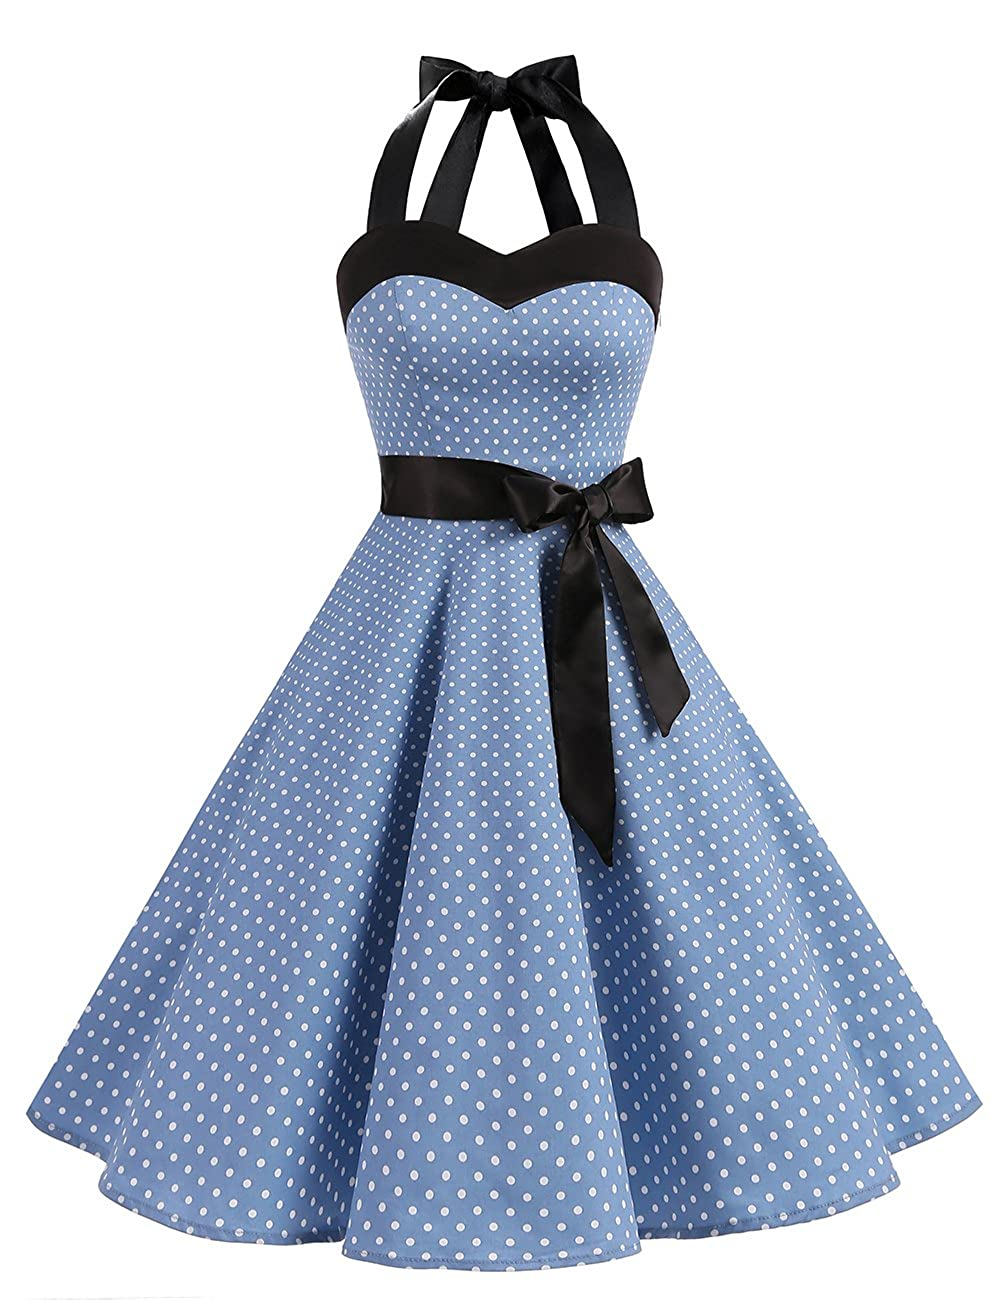 TALLA 3XL. DRESSTELLS® Halter 50s Rockabilly Polka Dots Audrey Dress Retro Cocktail Dress Blue Small White Dot 3XL